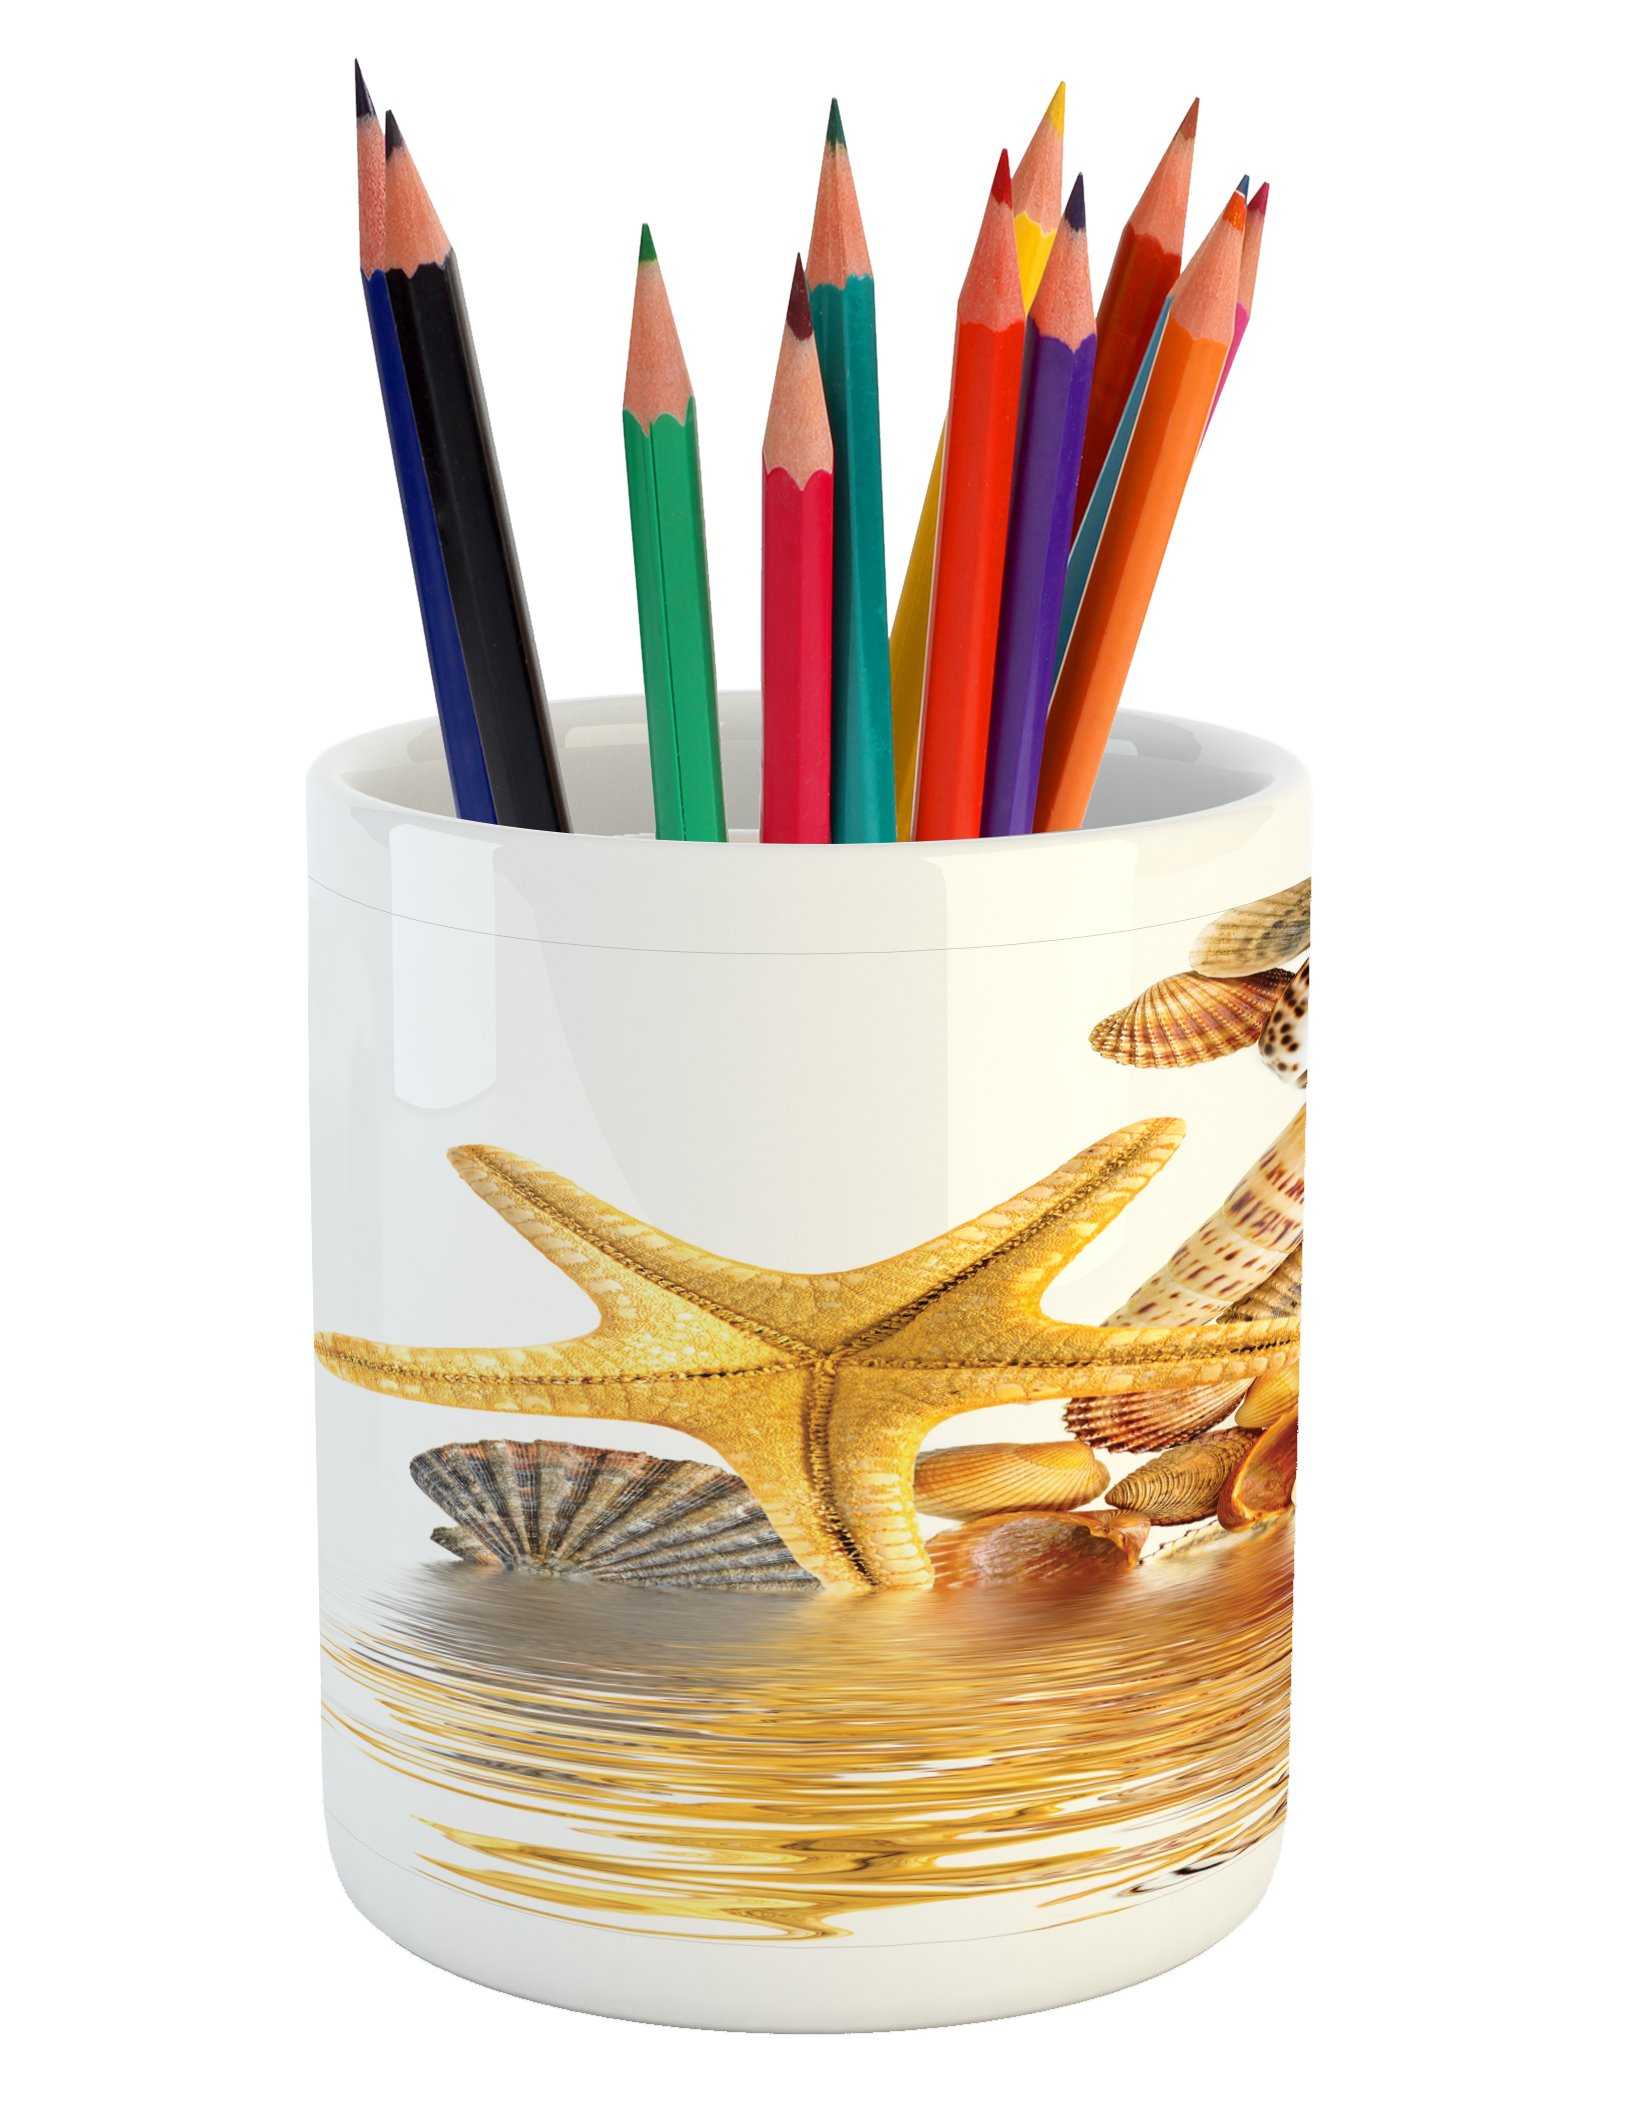 Ambesonne Seashells Pencil Pen Holder, Shells and Starfish Reflection Water Golden Yellow Spa Clear Beach Theme, Printed Ceramic Pencil Pen Holder for Desk Office Accessory, Earth Yellow Cream